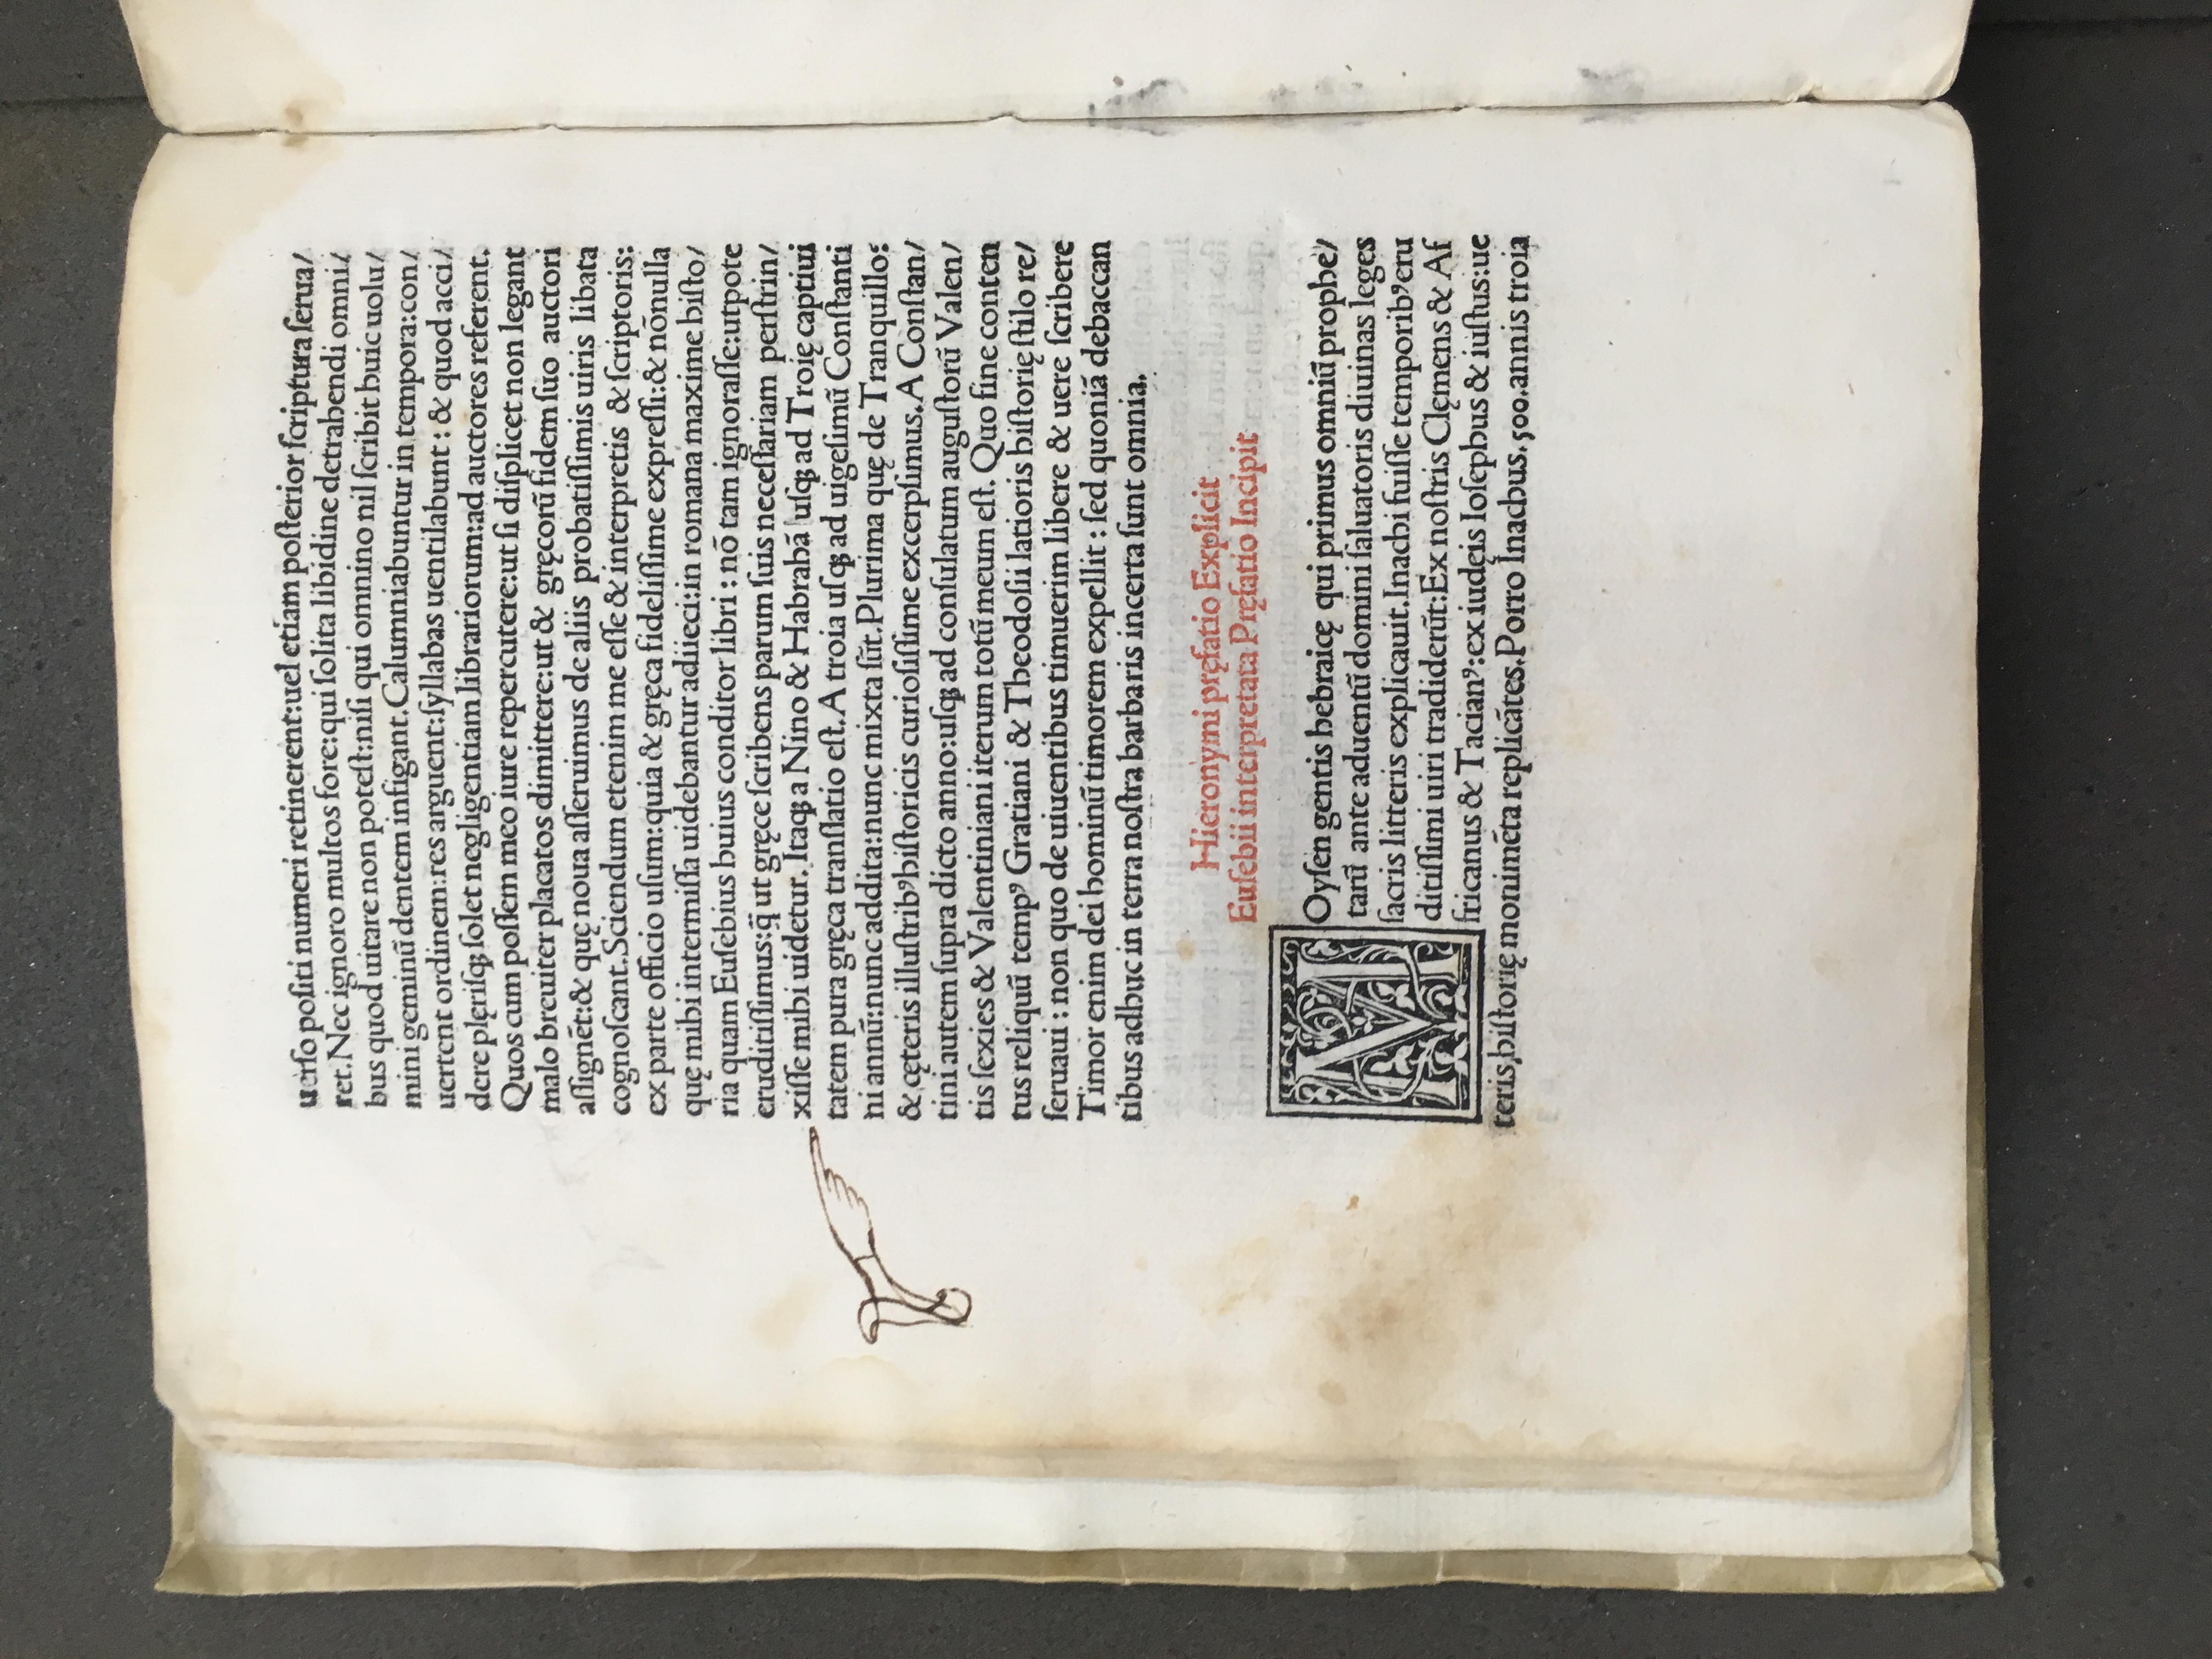 Page from the Chronicon showing a manicule pointing to a line of text